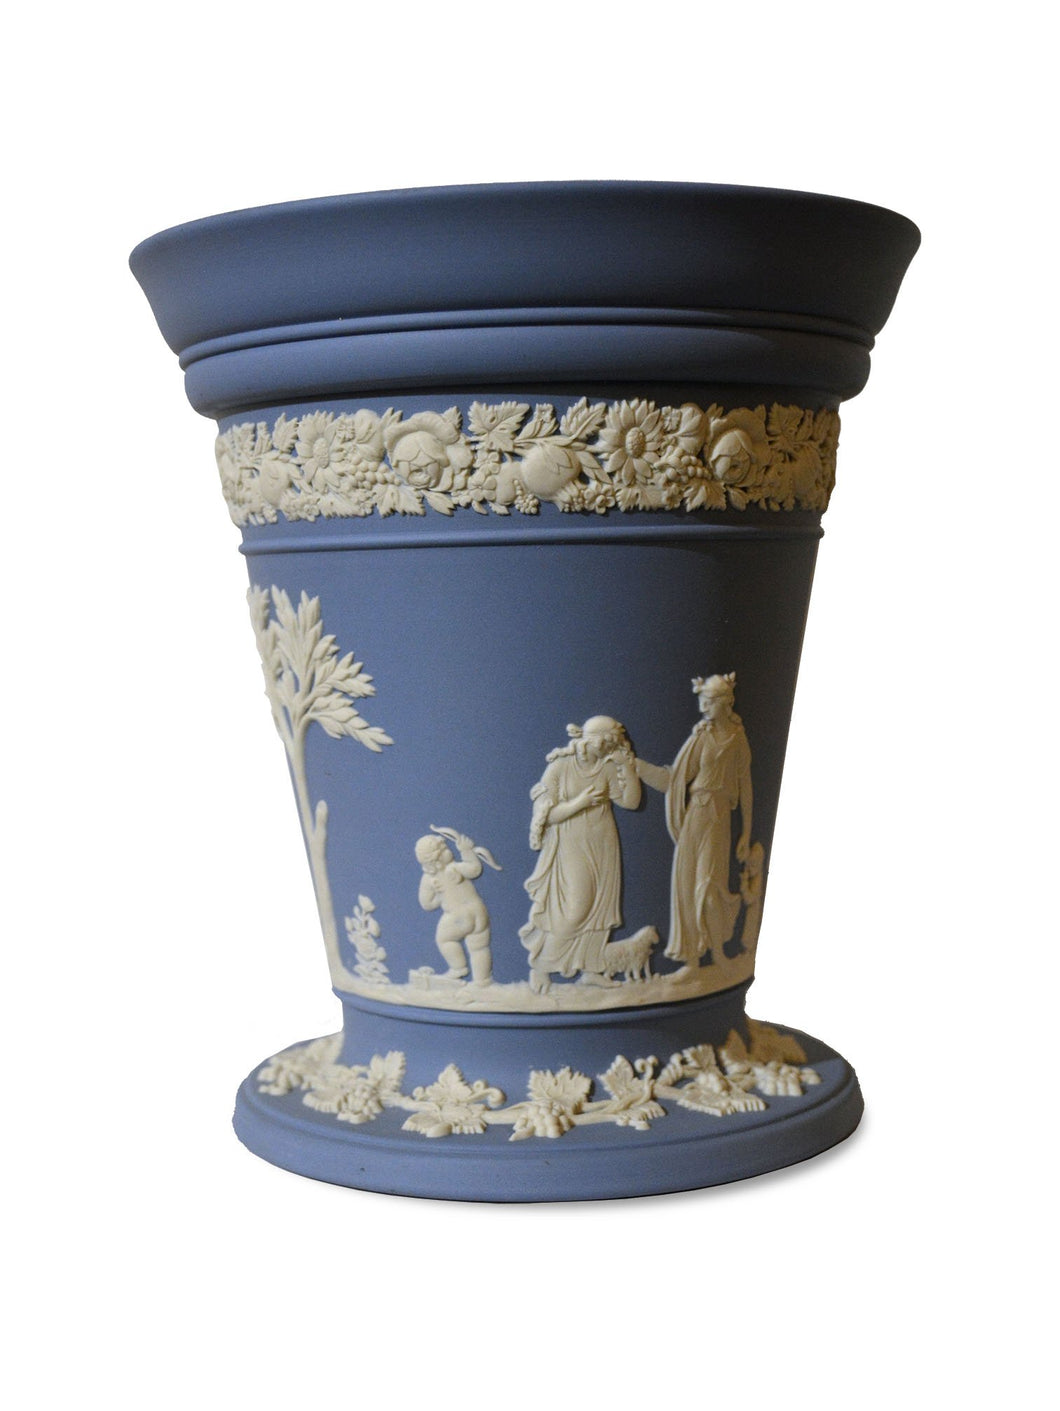 wedgwood - biscuit - antiquaire - www.galerieflorentine.com